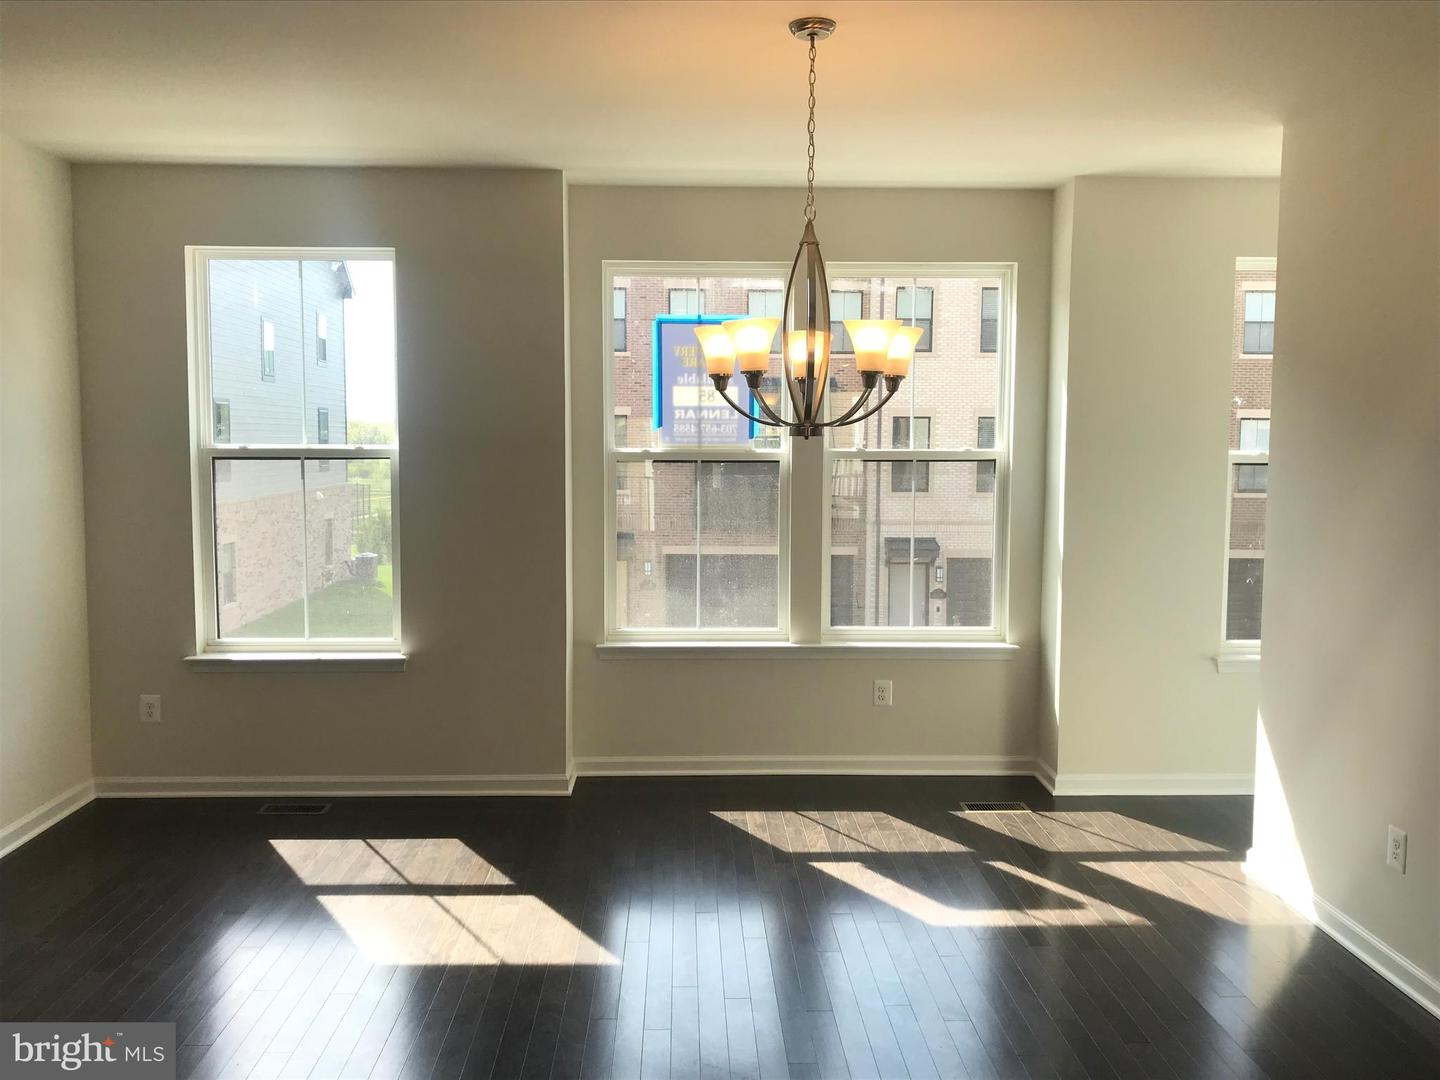 Additional photo for property listing at 3073 Alan Shepard St 3073 Alan Shepard St Herndon, Virginia 20171 United States